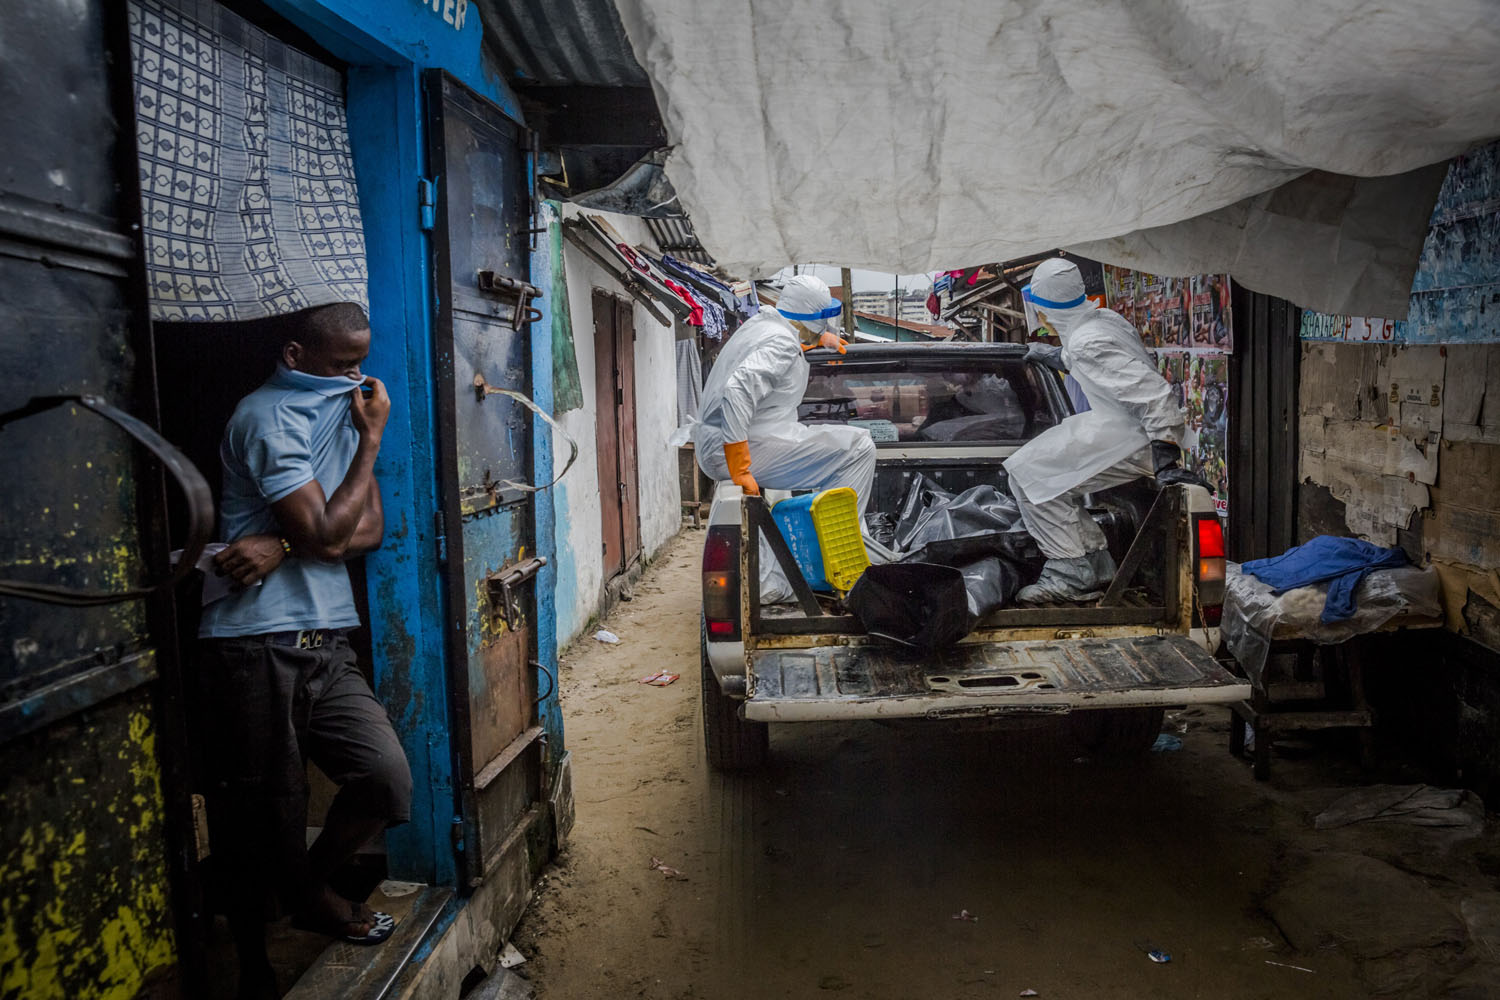 A resident of the West Point neighborhood covers his nose as a burial team leaves with a body in Monrovia, Liberia, Sept. 17, 2014.